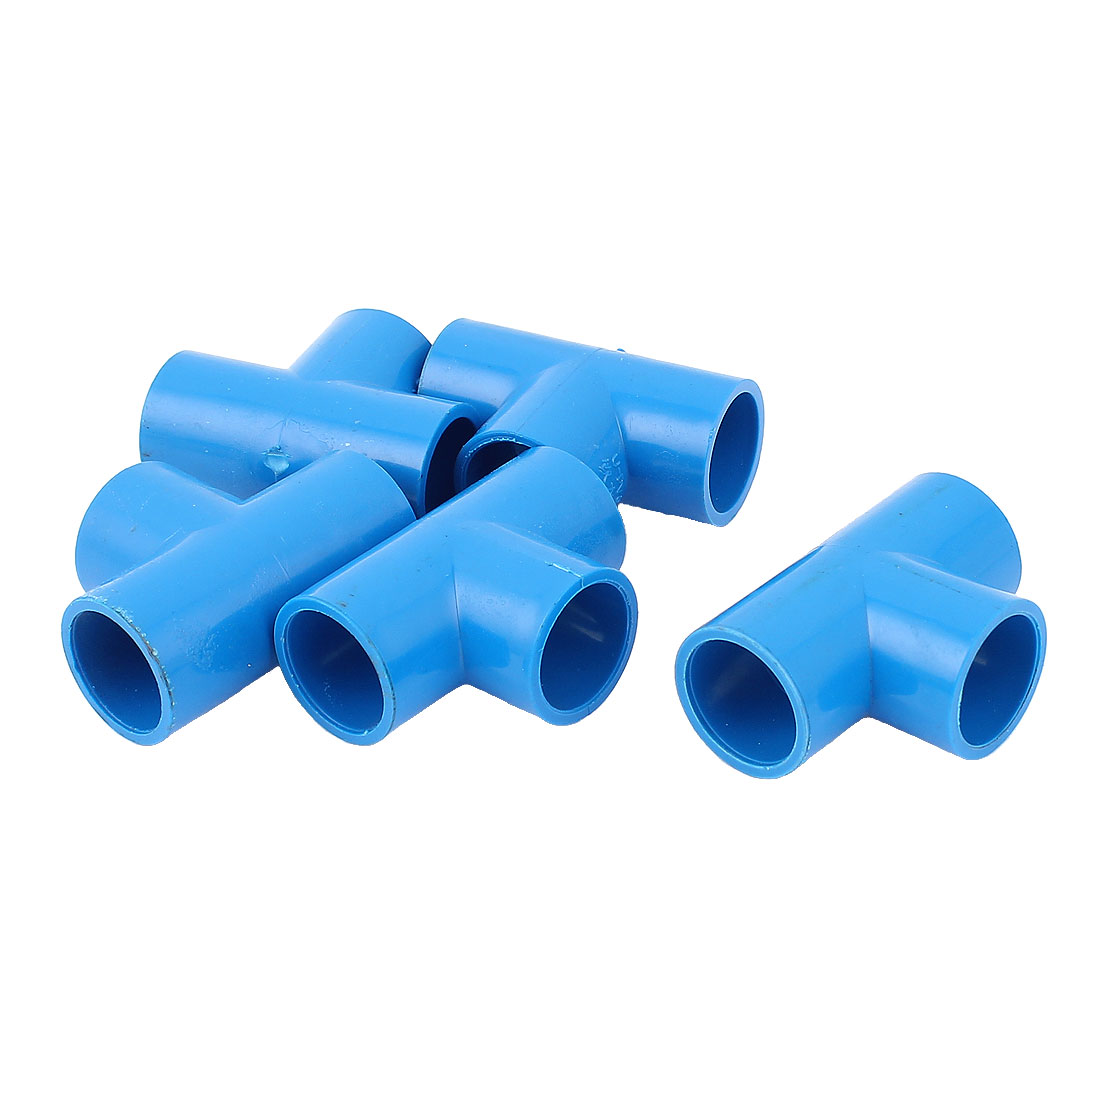 5Pcs 20mm Inner Dia U-PVC T Type 3 Way Water Pipe Hose Joint Connector Blue